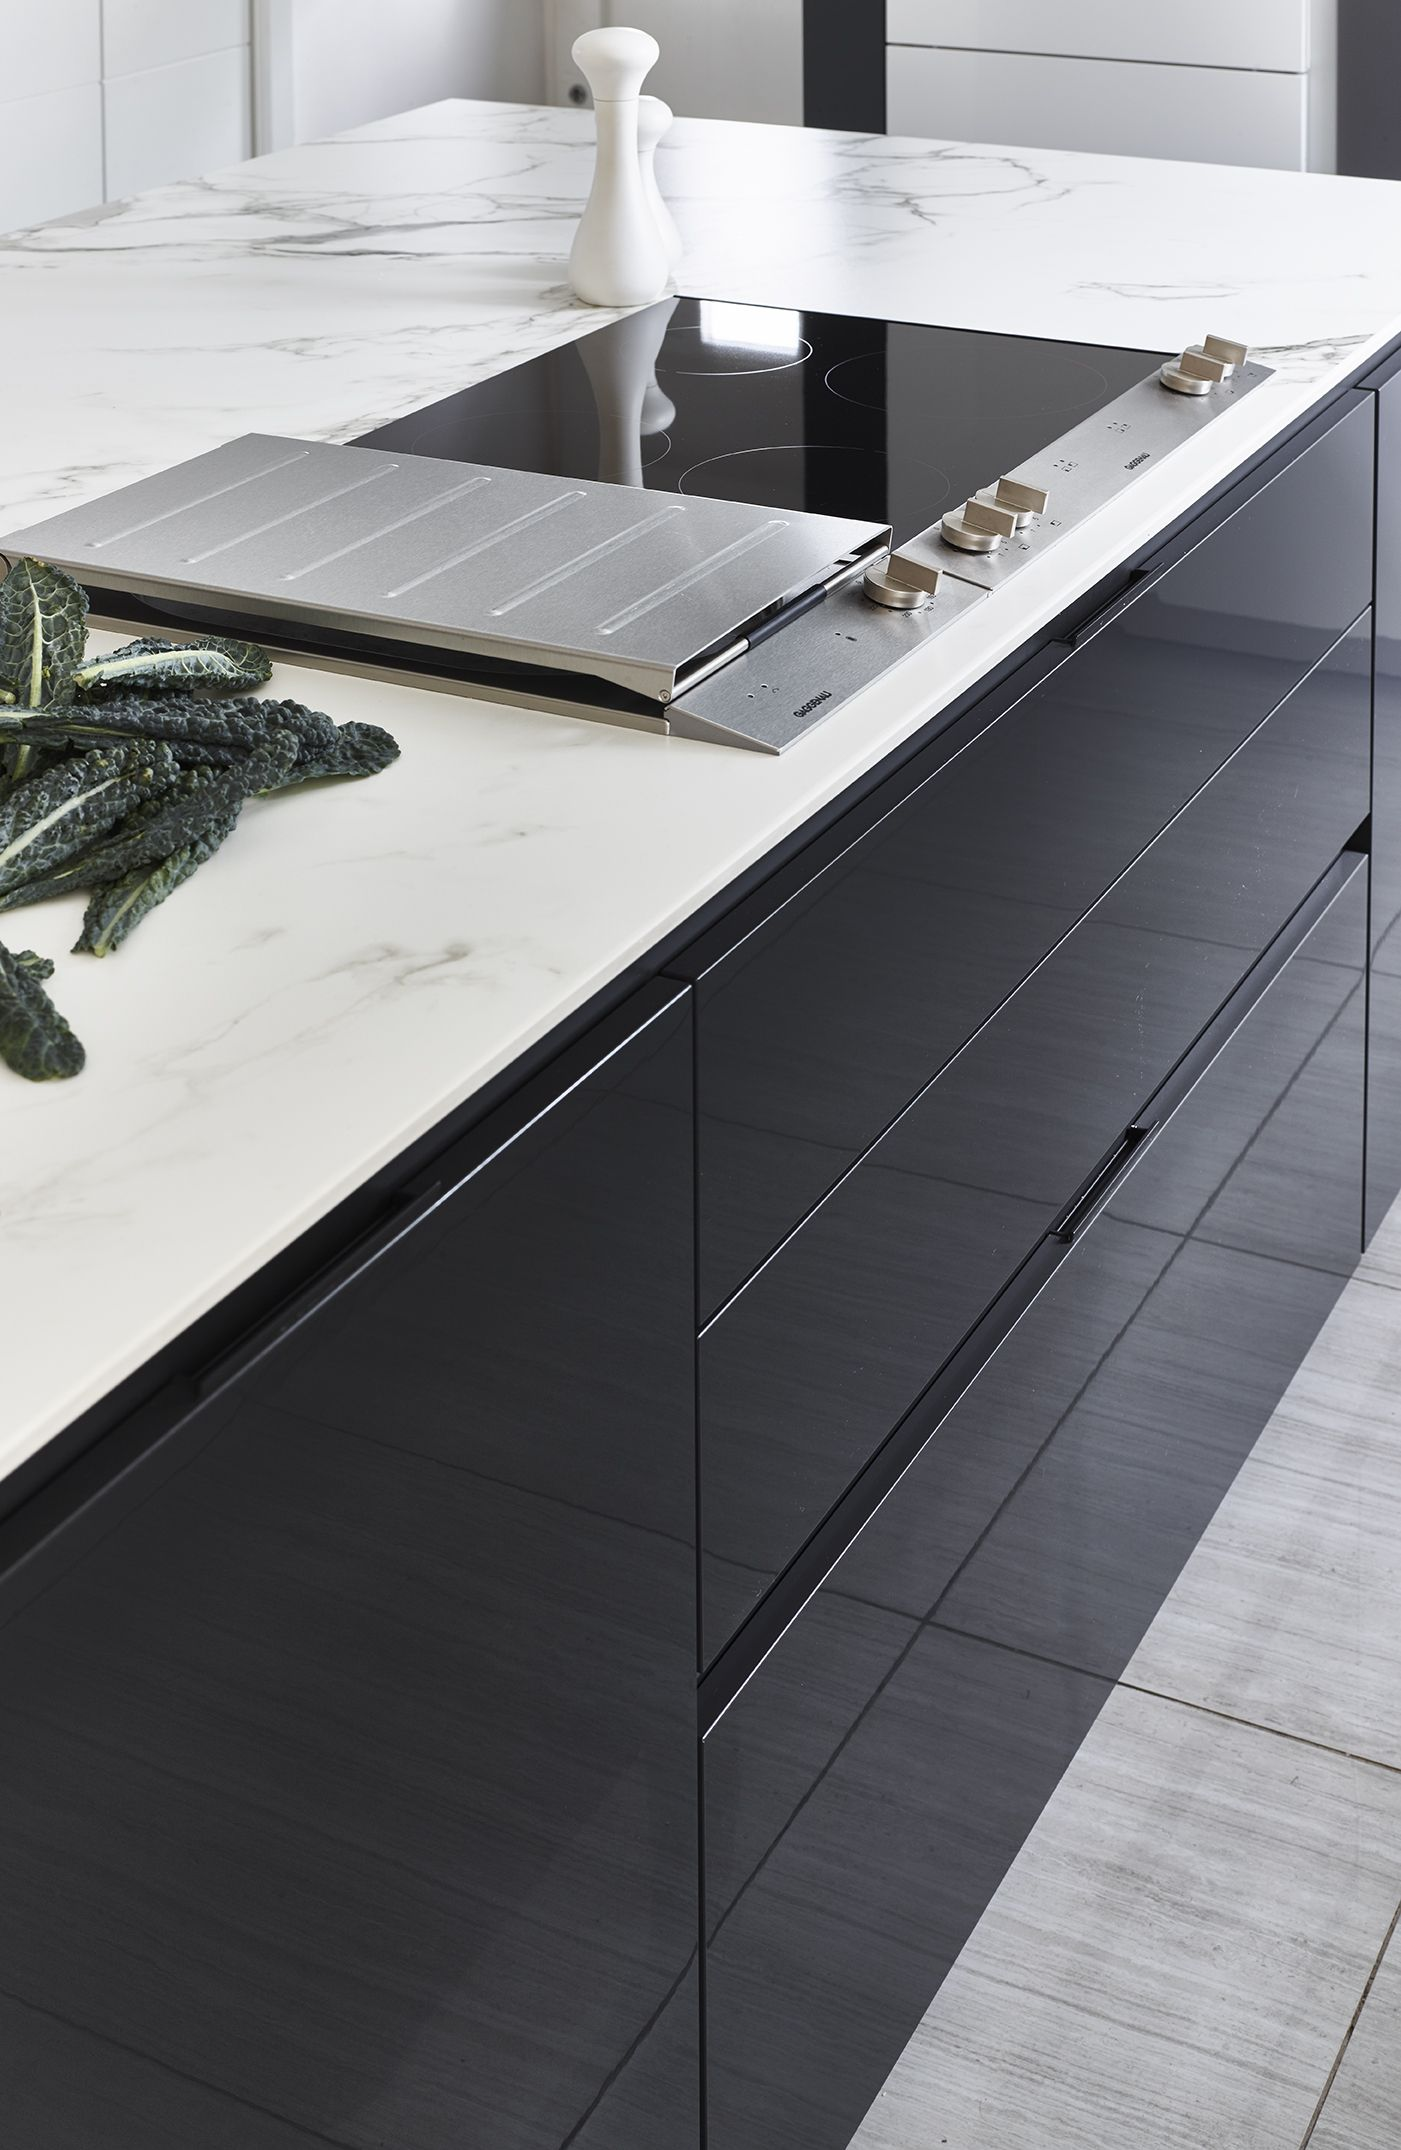 Siematic Showroomkeukens Siematic S3 Siematic S3 Slm Handleless Ex Display Kitchen Royal